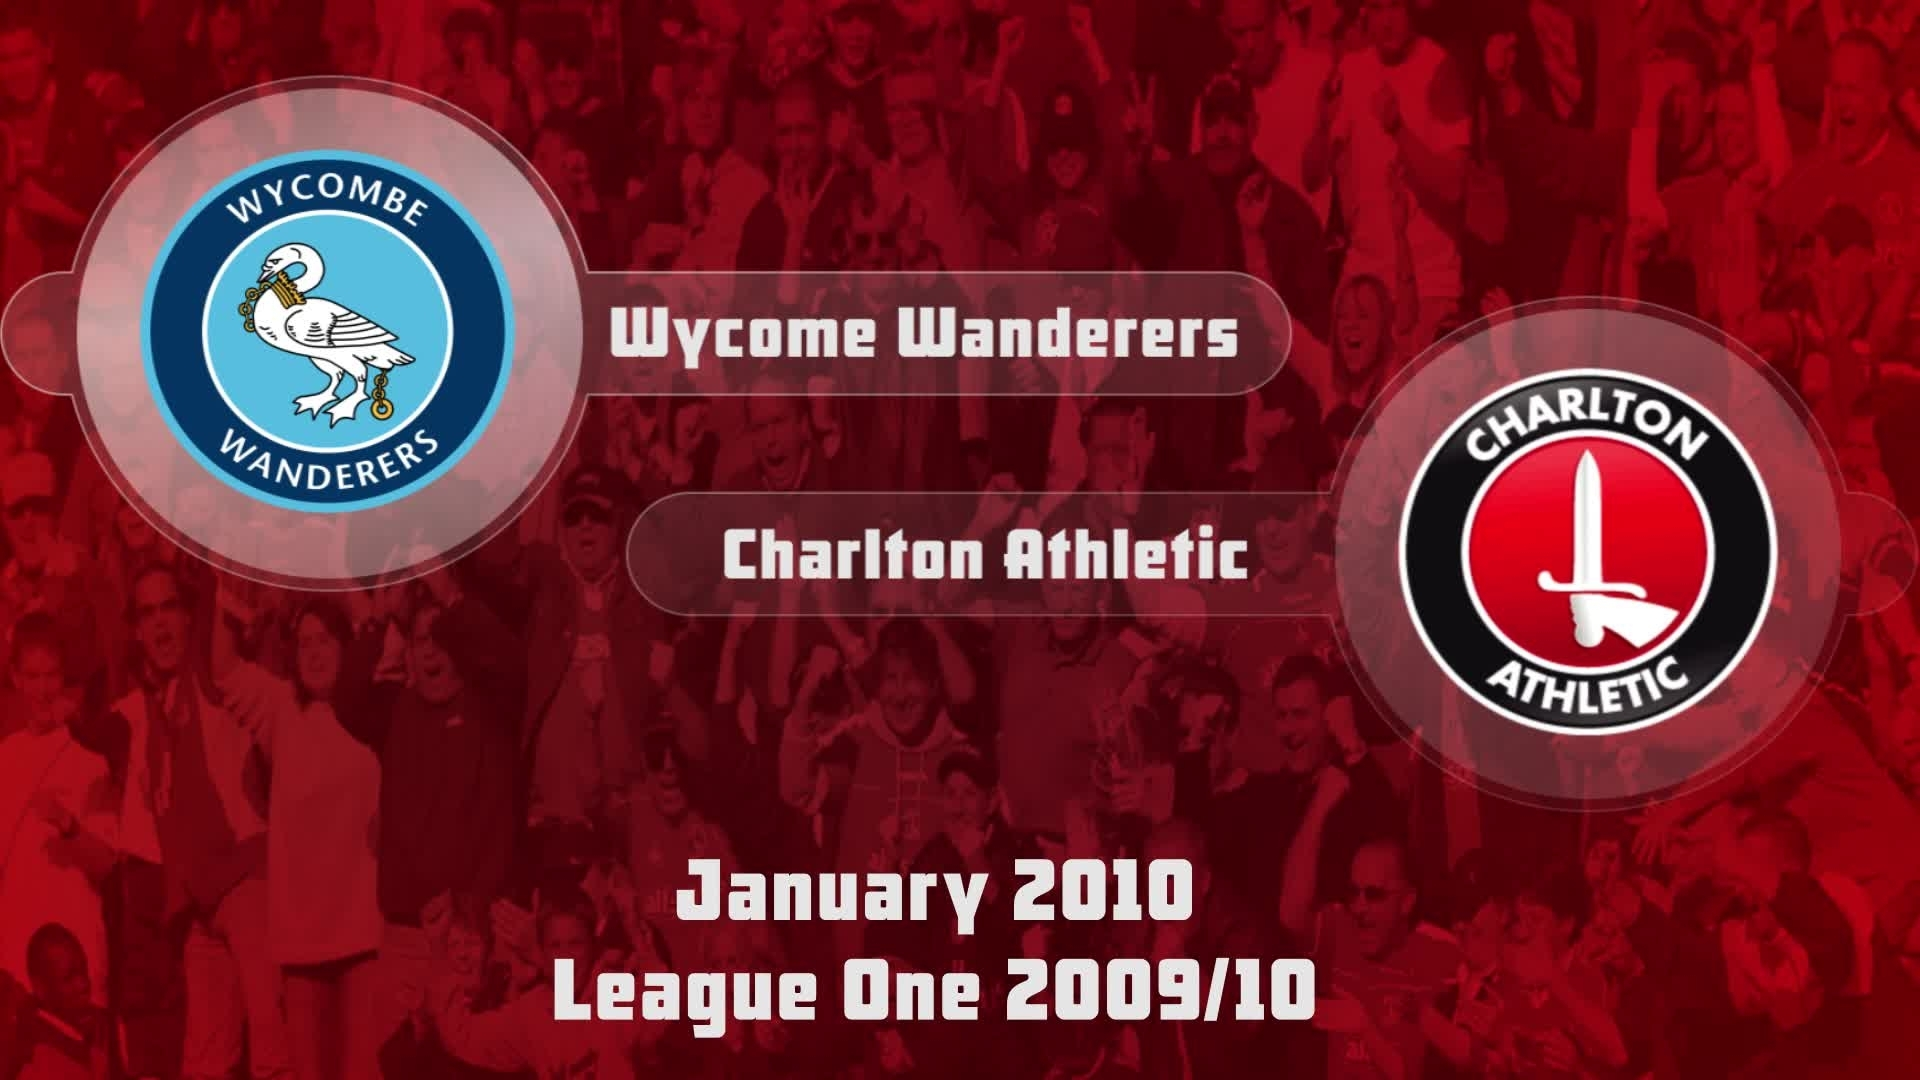 29 HIGHLIGHTS | Wycombe 1 Charlton 2 (Jan 2010)